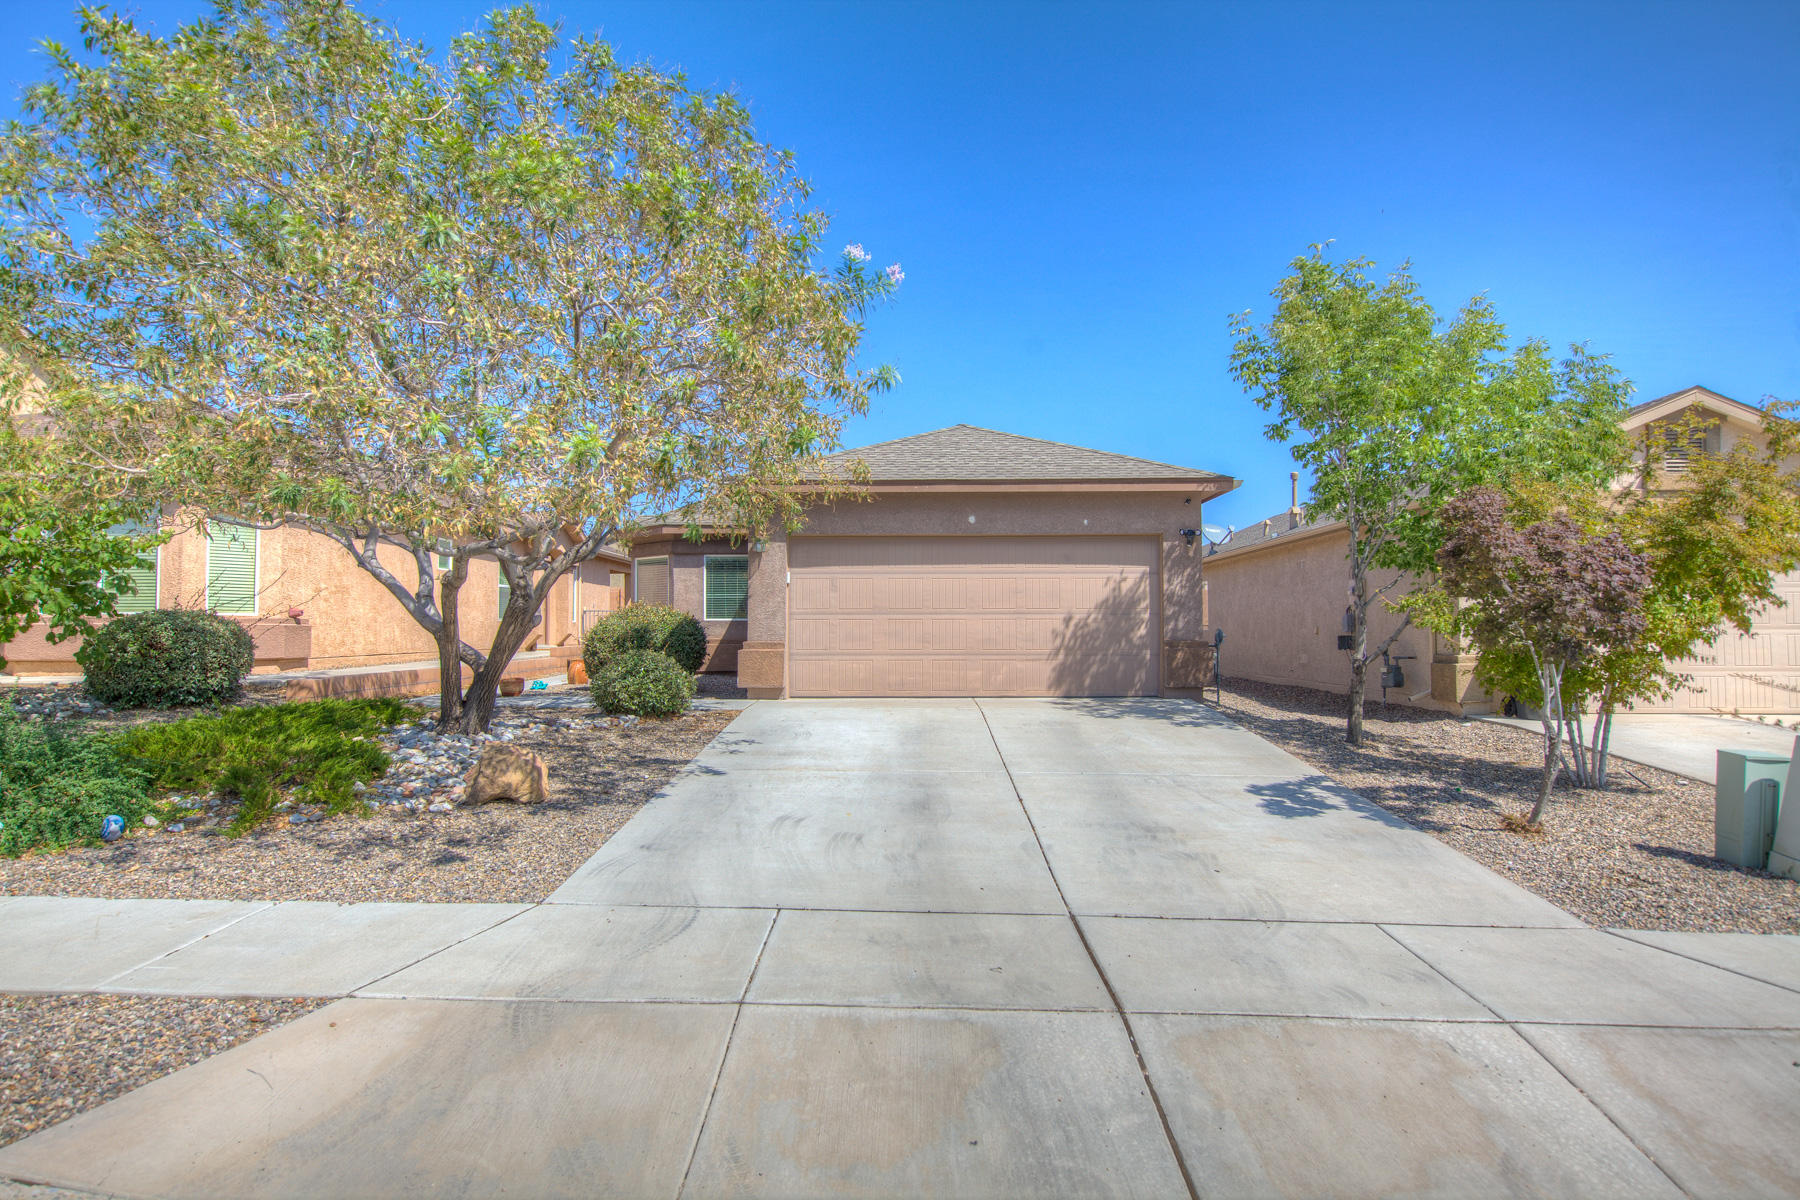 Beautiful 3 bedroom 2 bath 2 car garage home. Open light and bright new laminate wood floors in the kitchen an dining room. Newer carpet. move in ready.